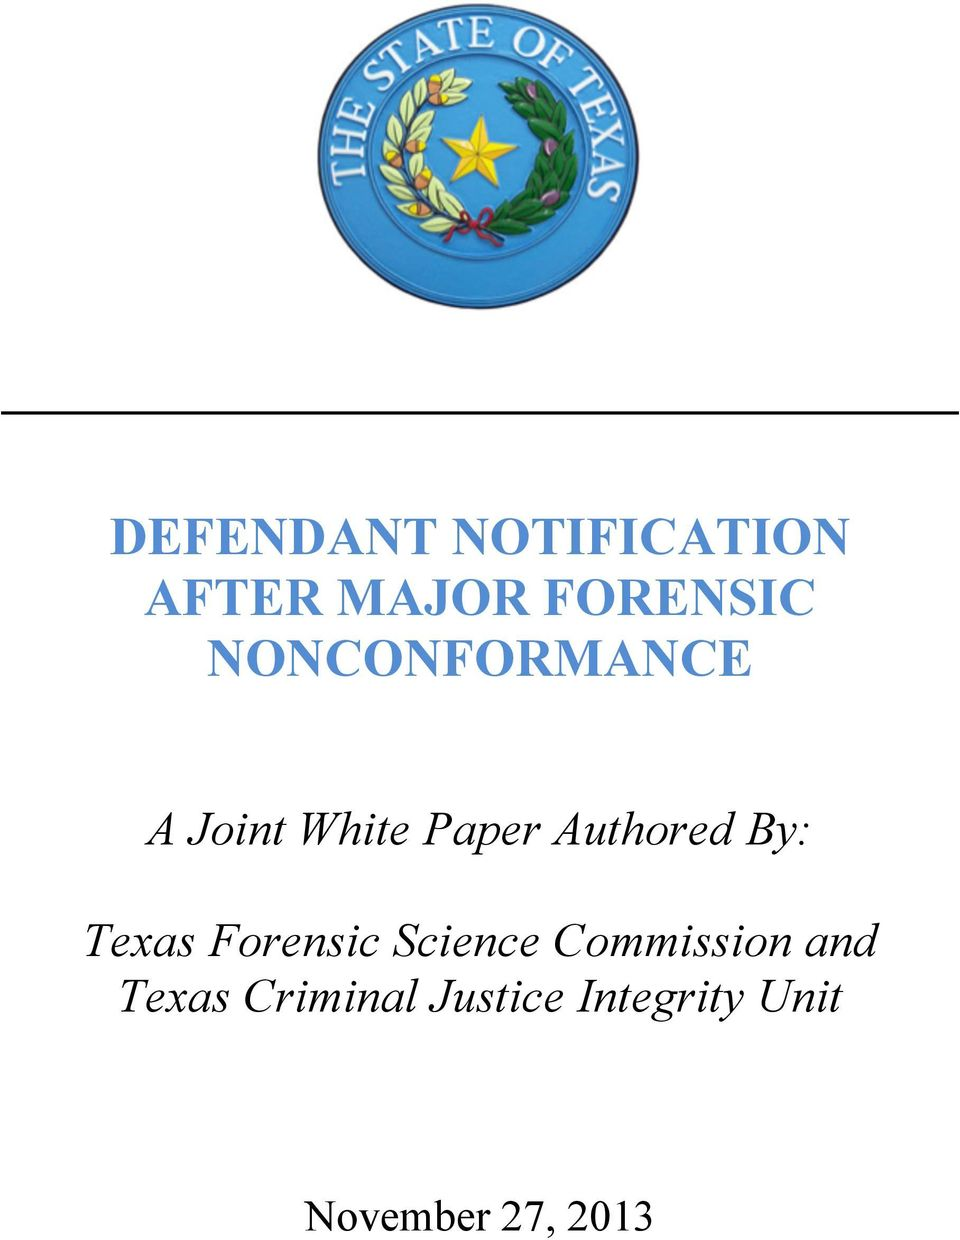 By: Texas Forensic Science Commission and